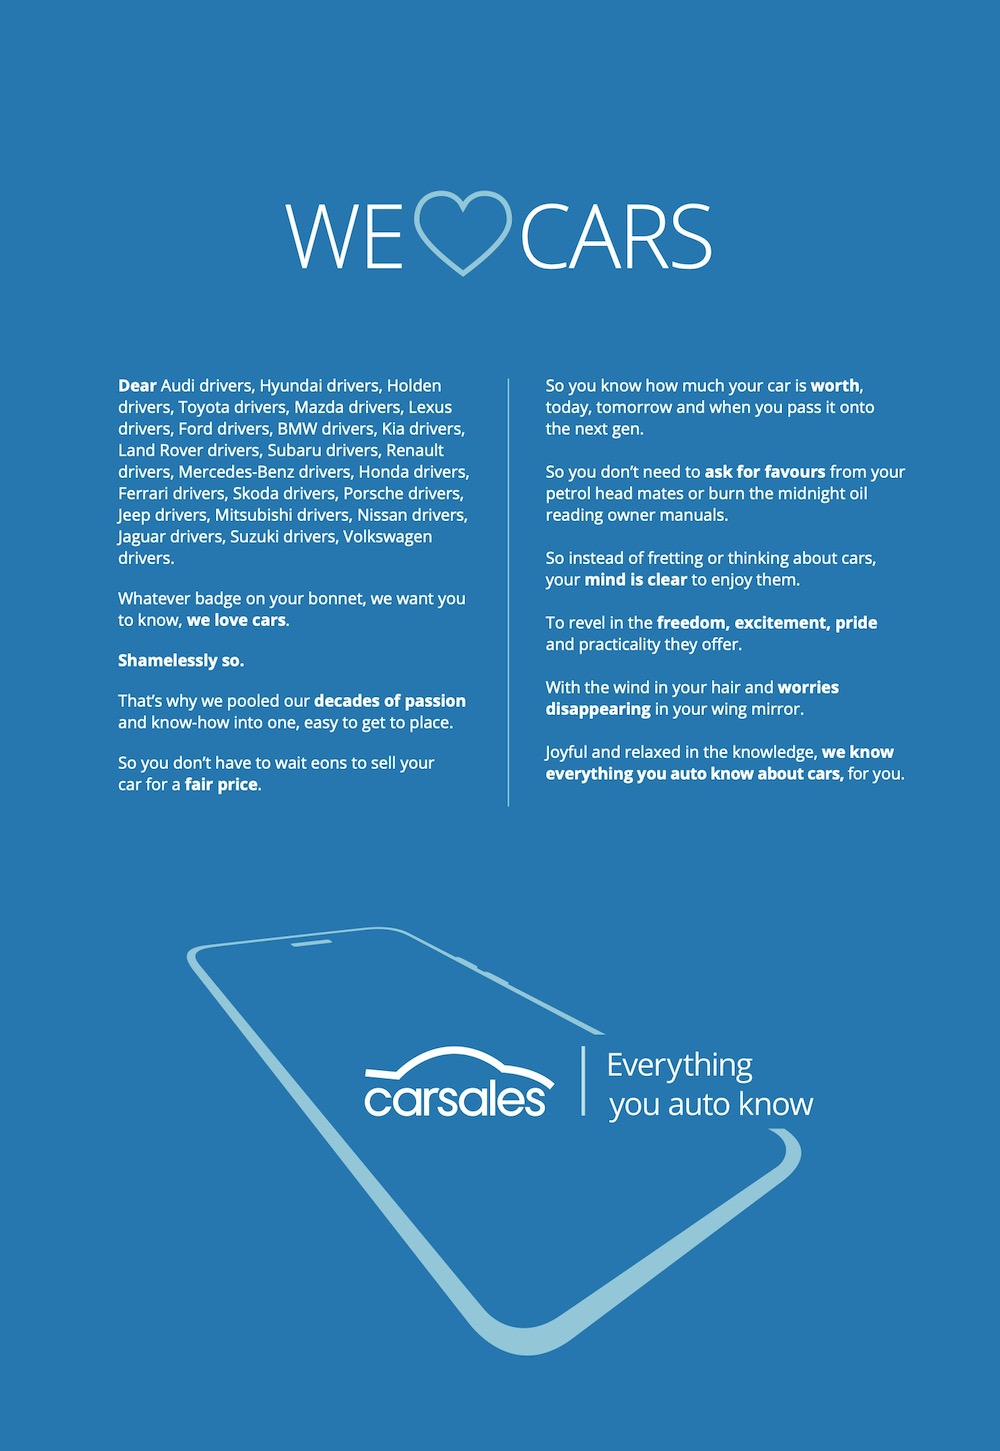 carsales launches new 'Everything You Auto Know' brand platform via BMF